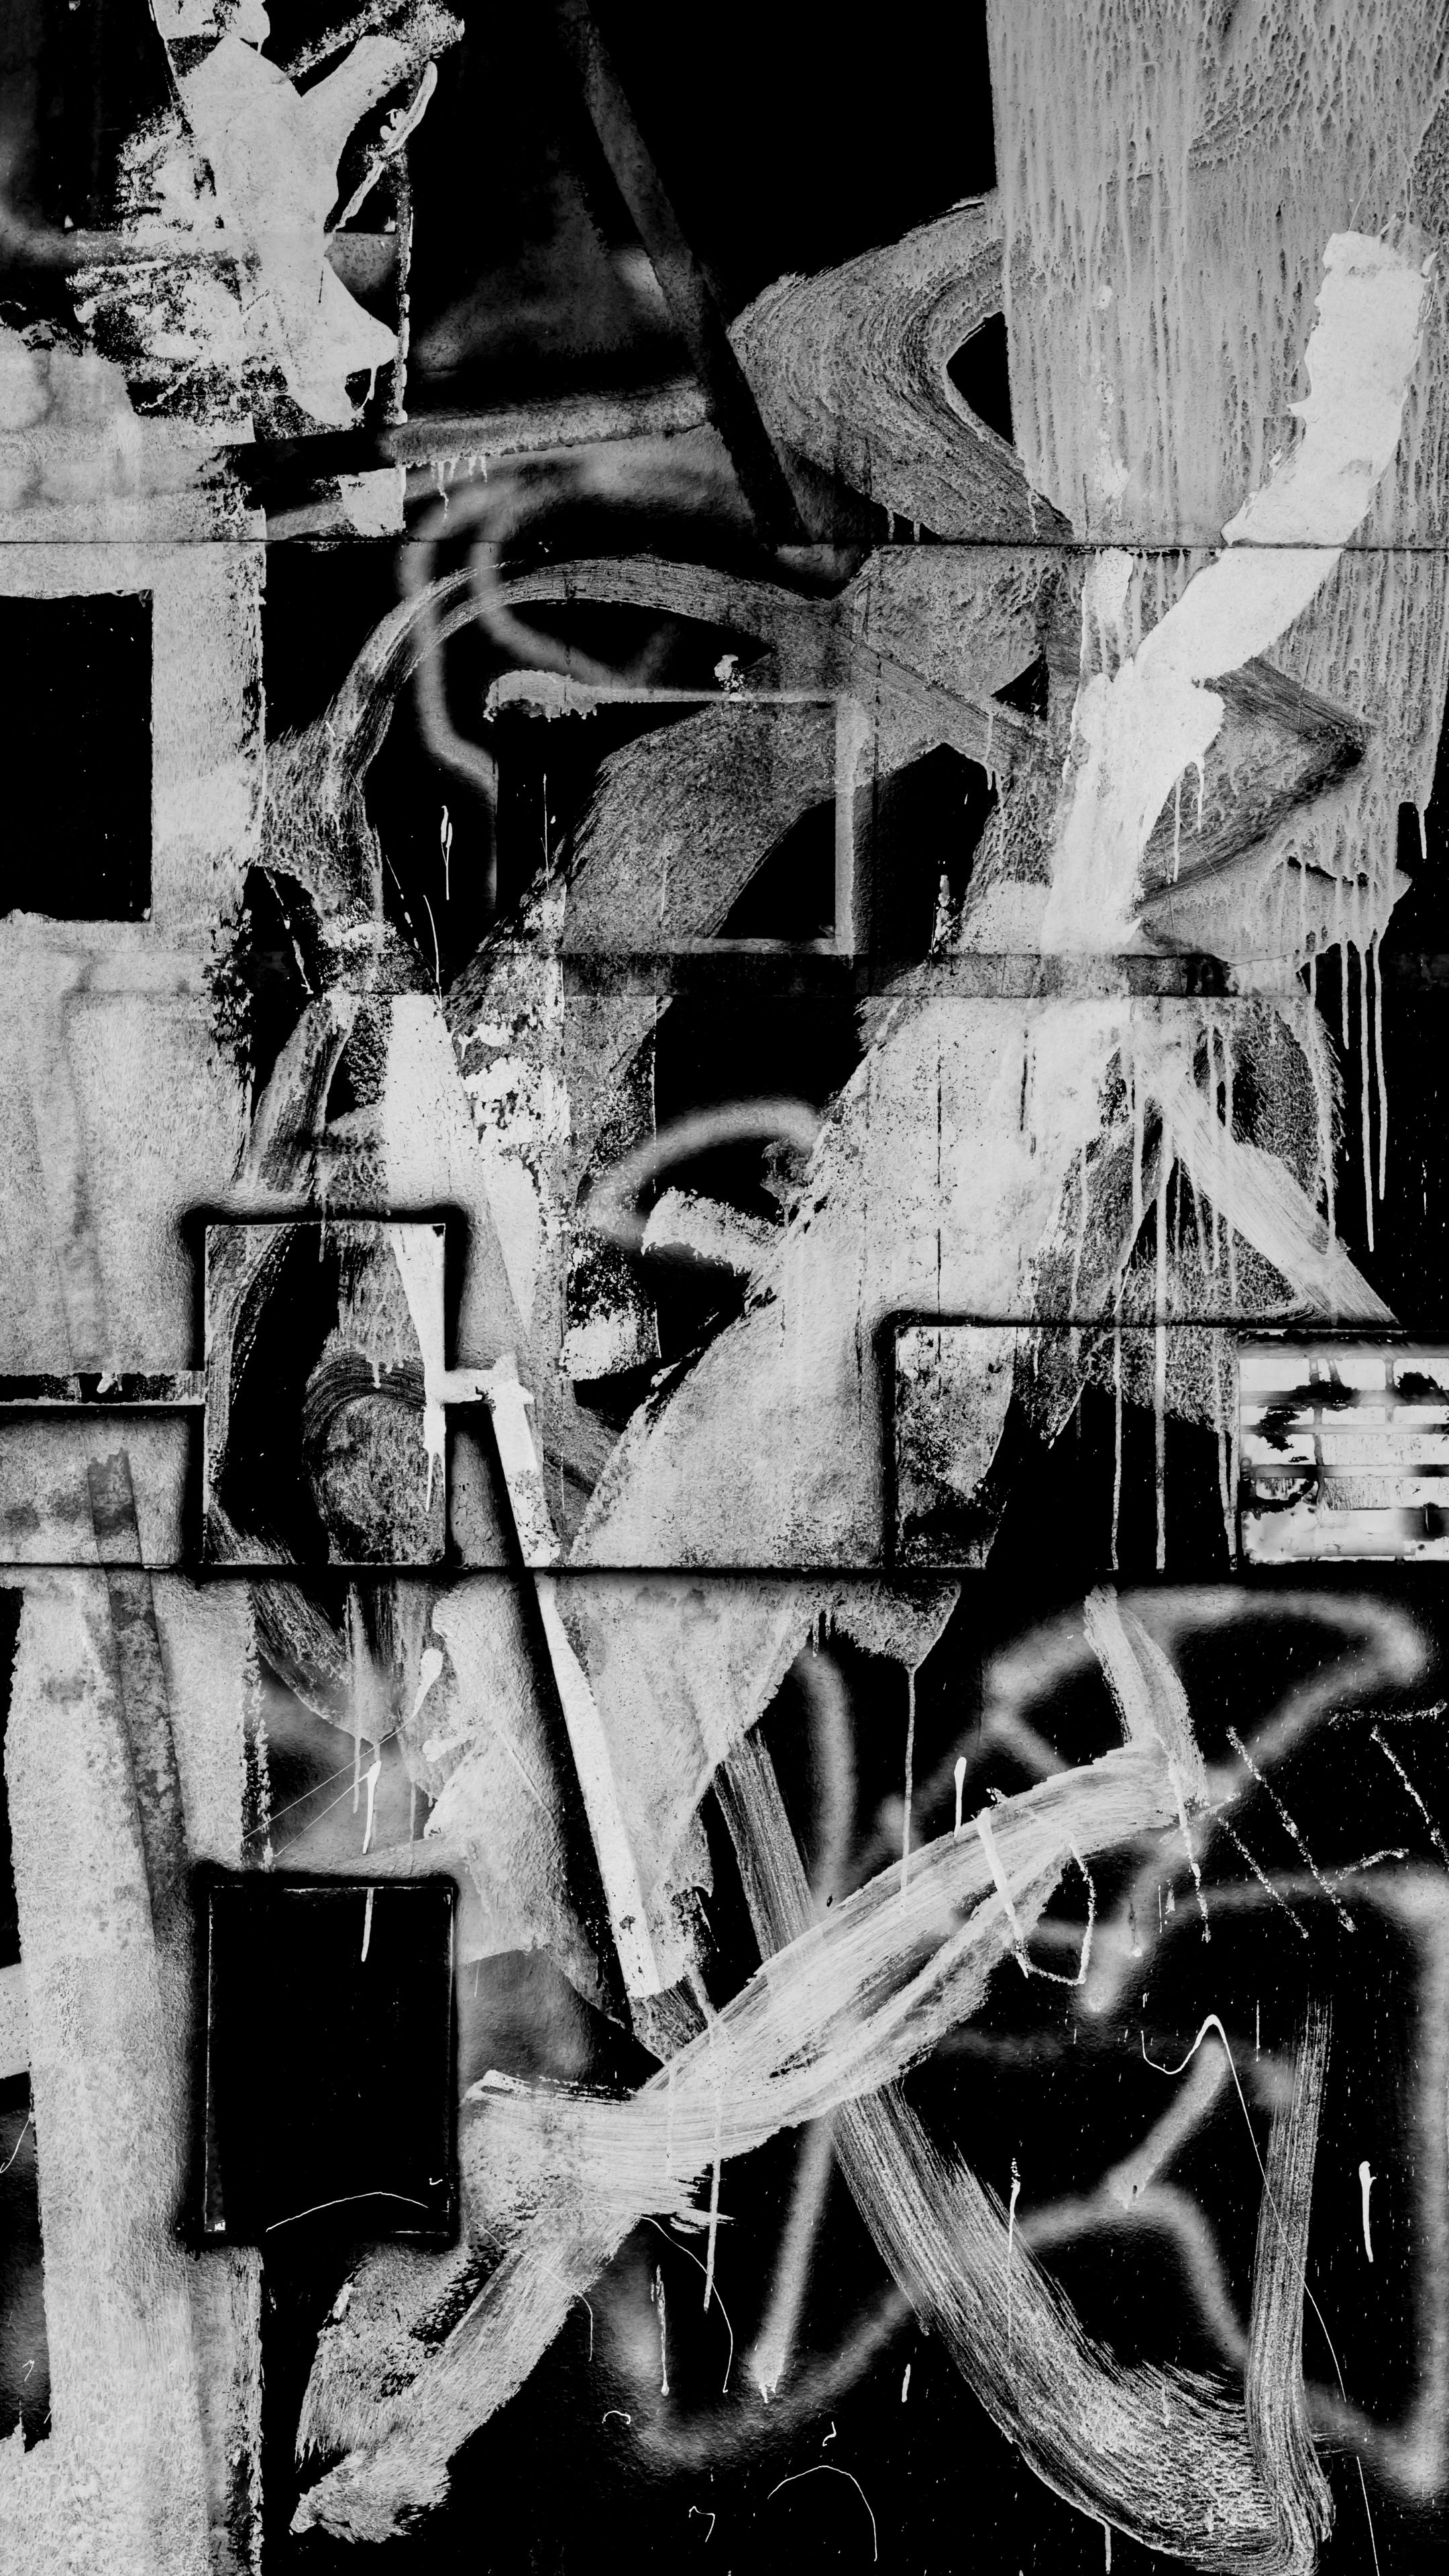 Abstract Stains Lines Bw Wall Art Wallpapers Hd 4k Background For Android Abstract Wallpaper Backgrounds Abstract Wallpaper